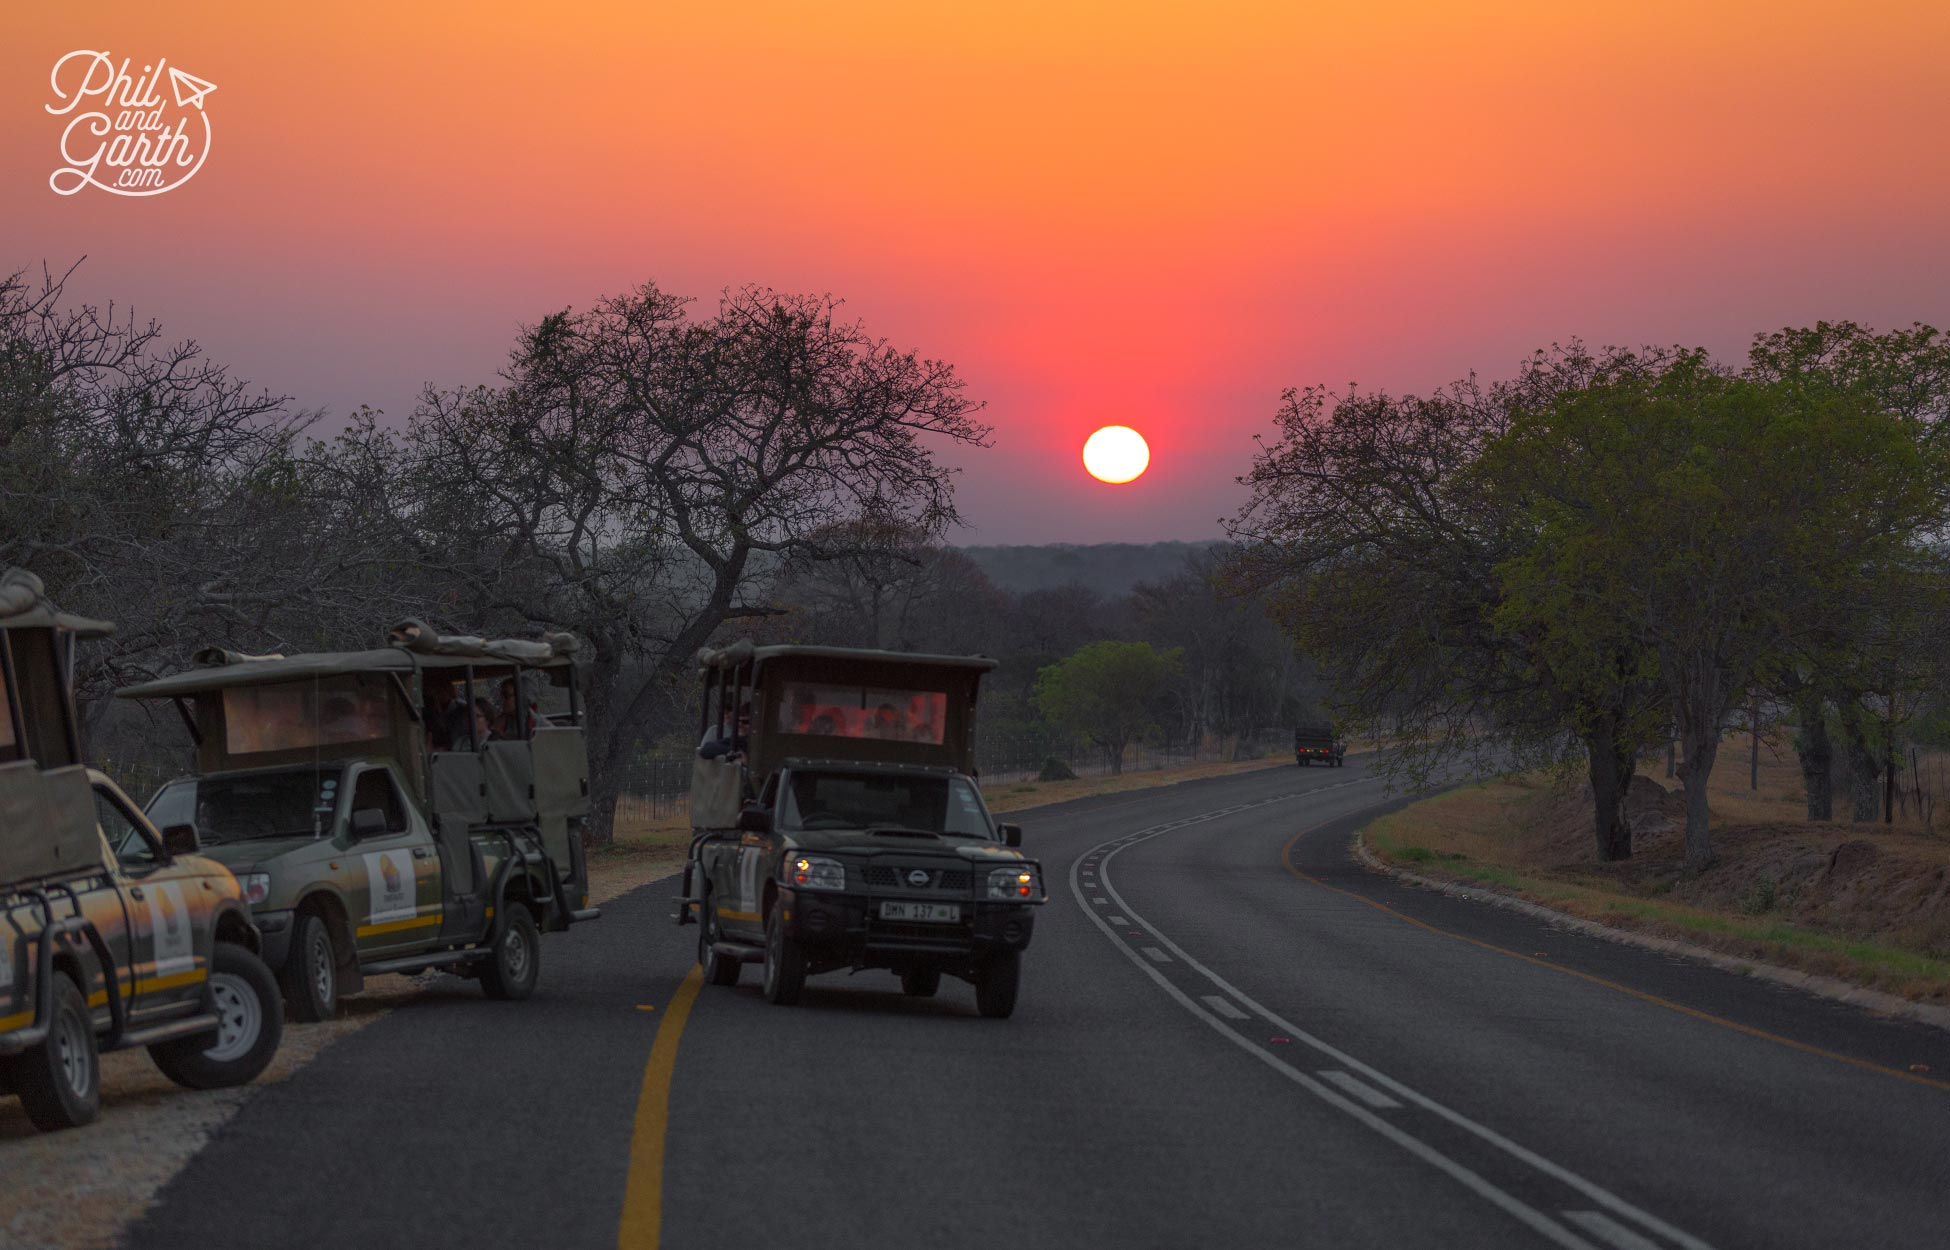 2 day Kruger National Park Safari - Early morning start - time to hit the main road to Kruger National Park